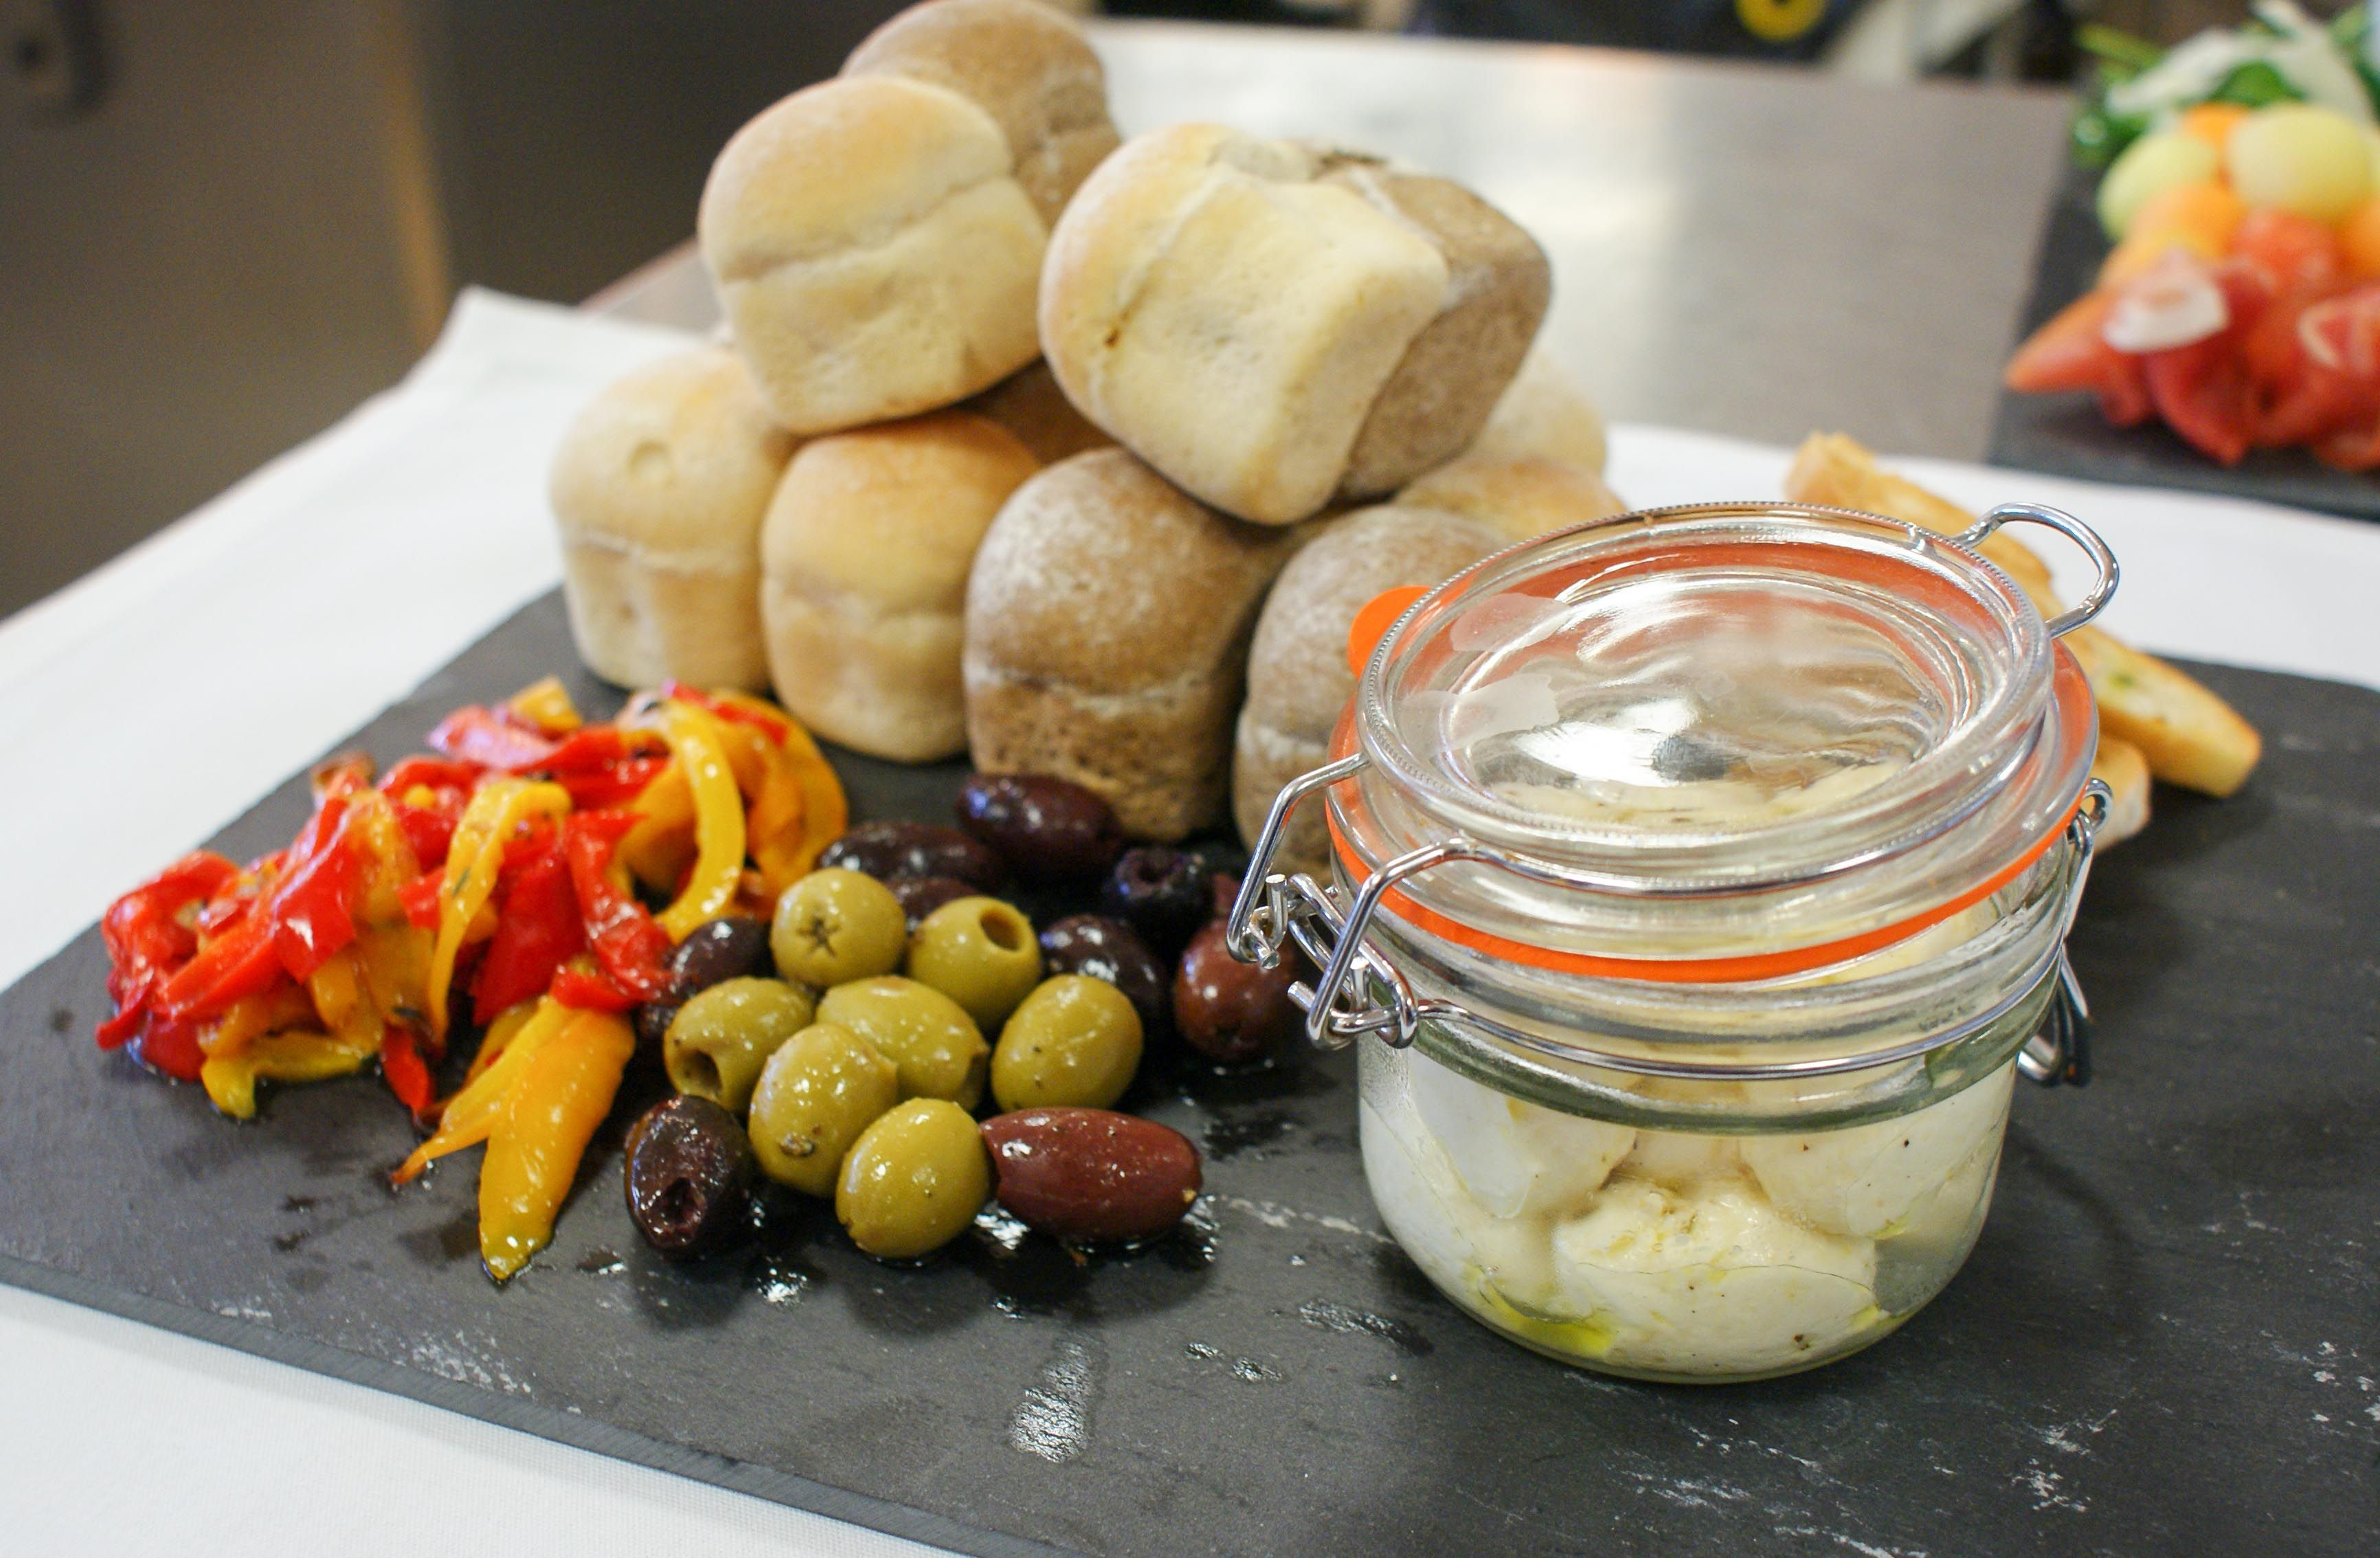 Starter: Baby Mozzarella balls, Roasted Red Peppers, Mixed Olives, Toasted Bruscetta Croutes